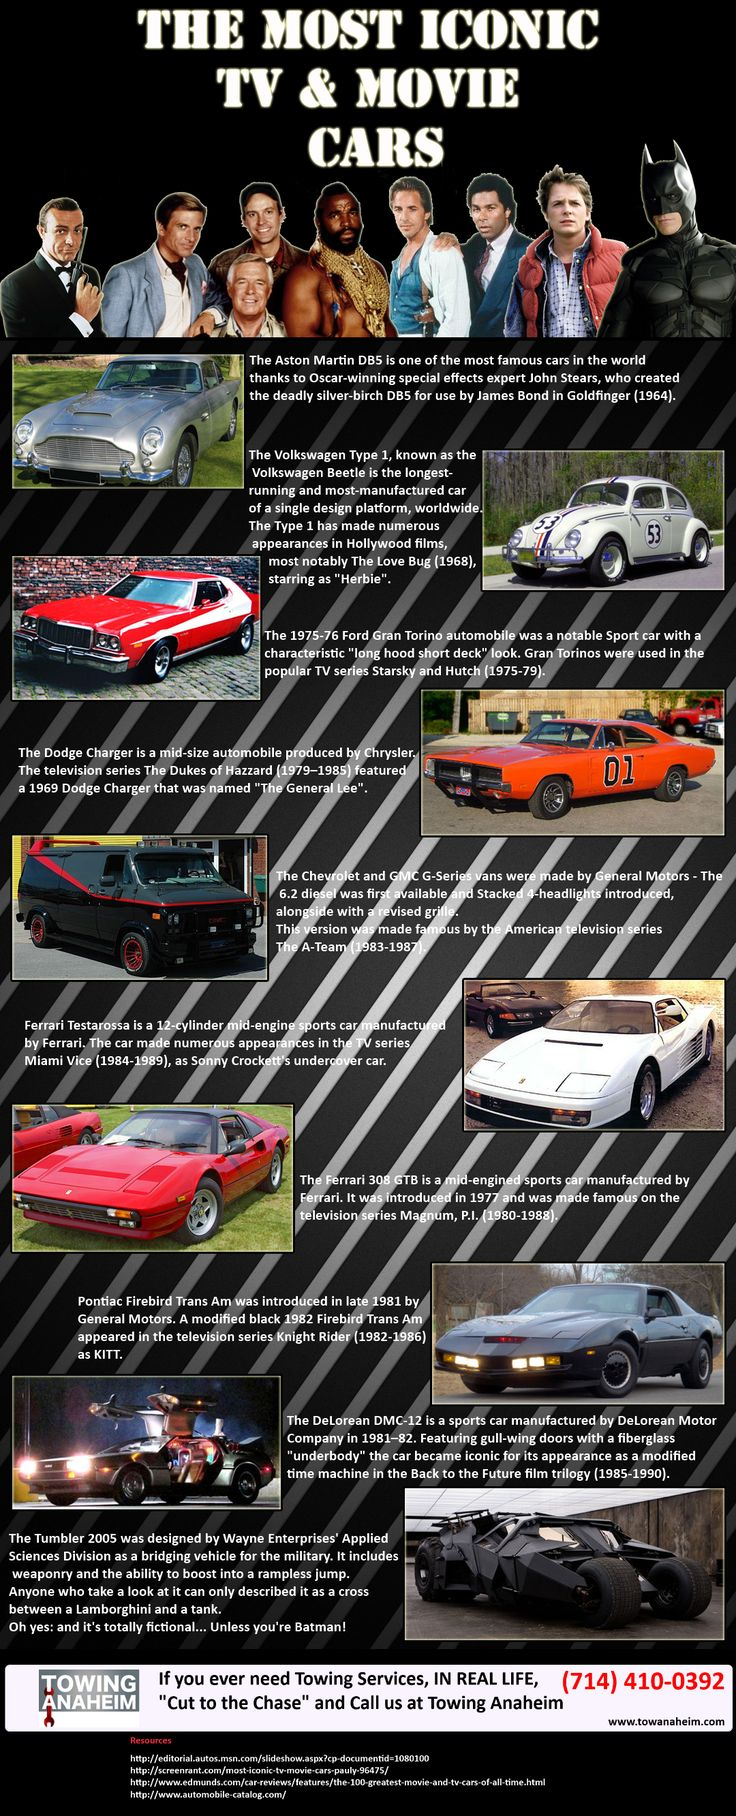 The Most Iconic TV & Movie Cars   #infographic #Movies #cars